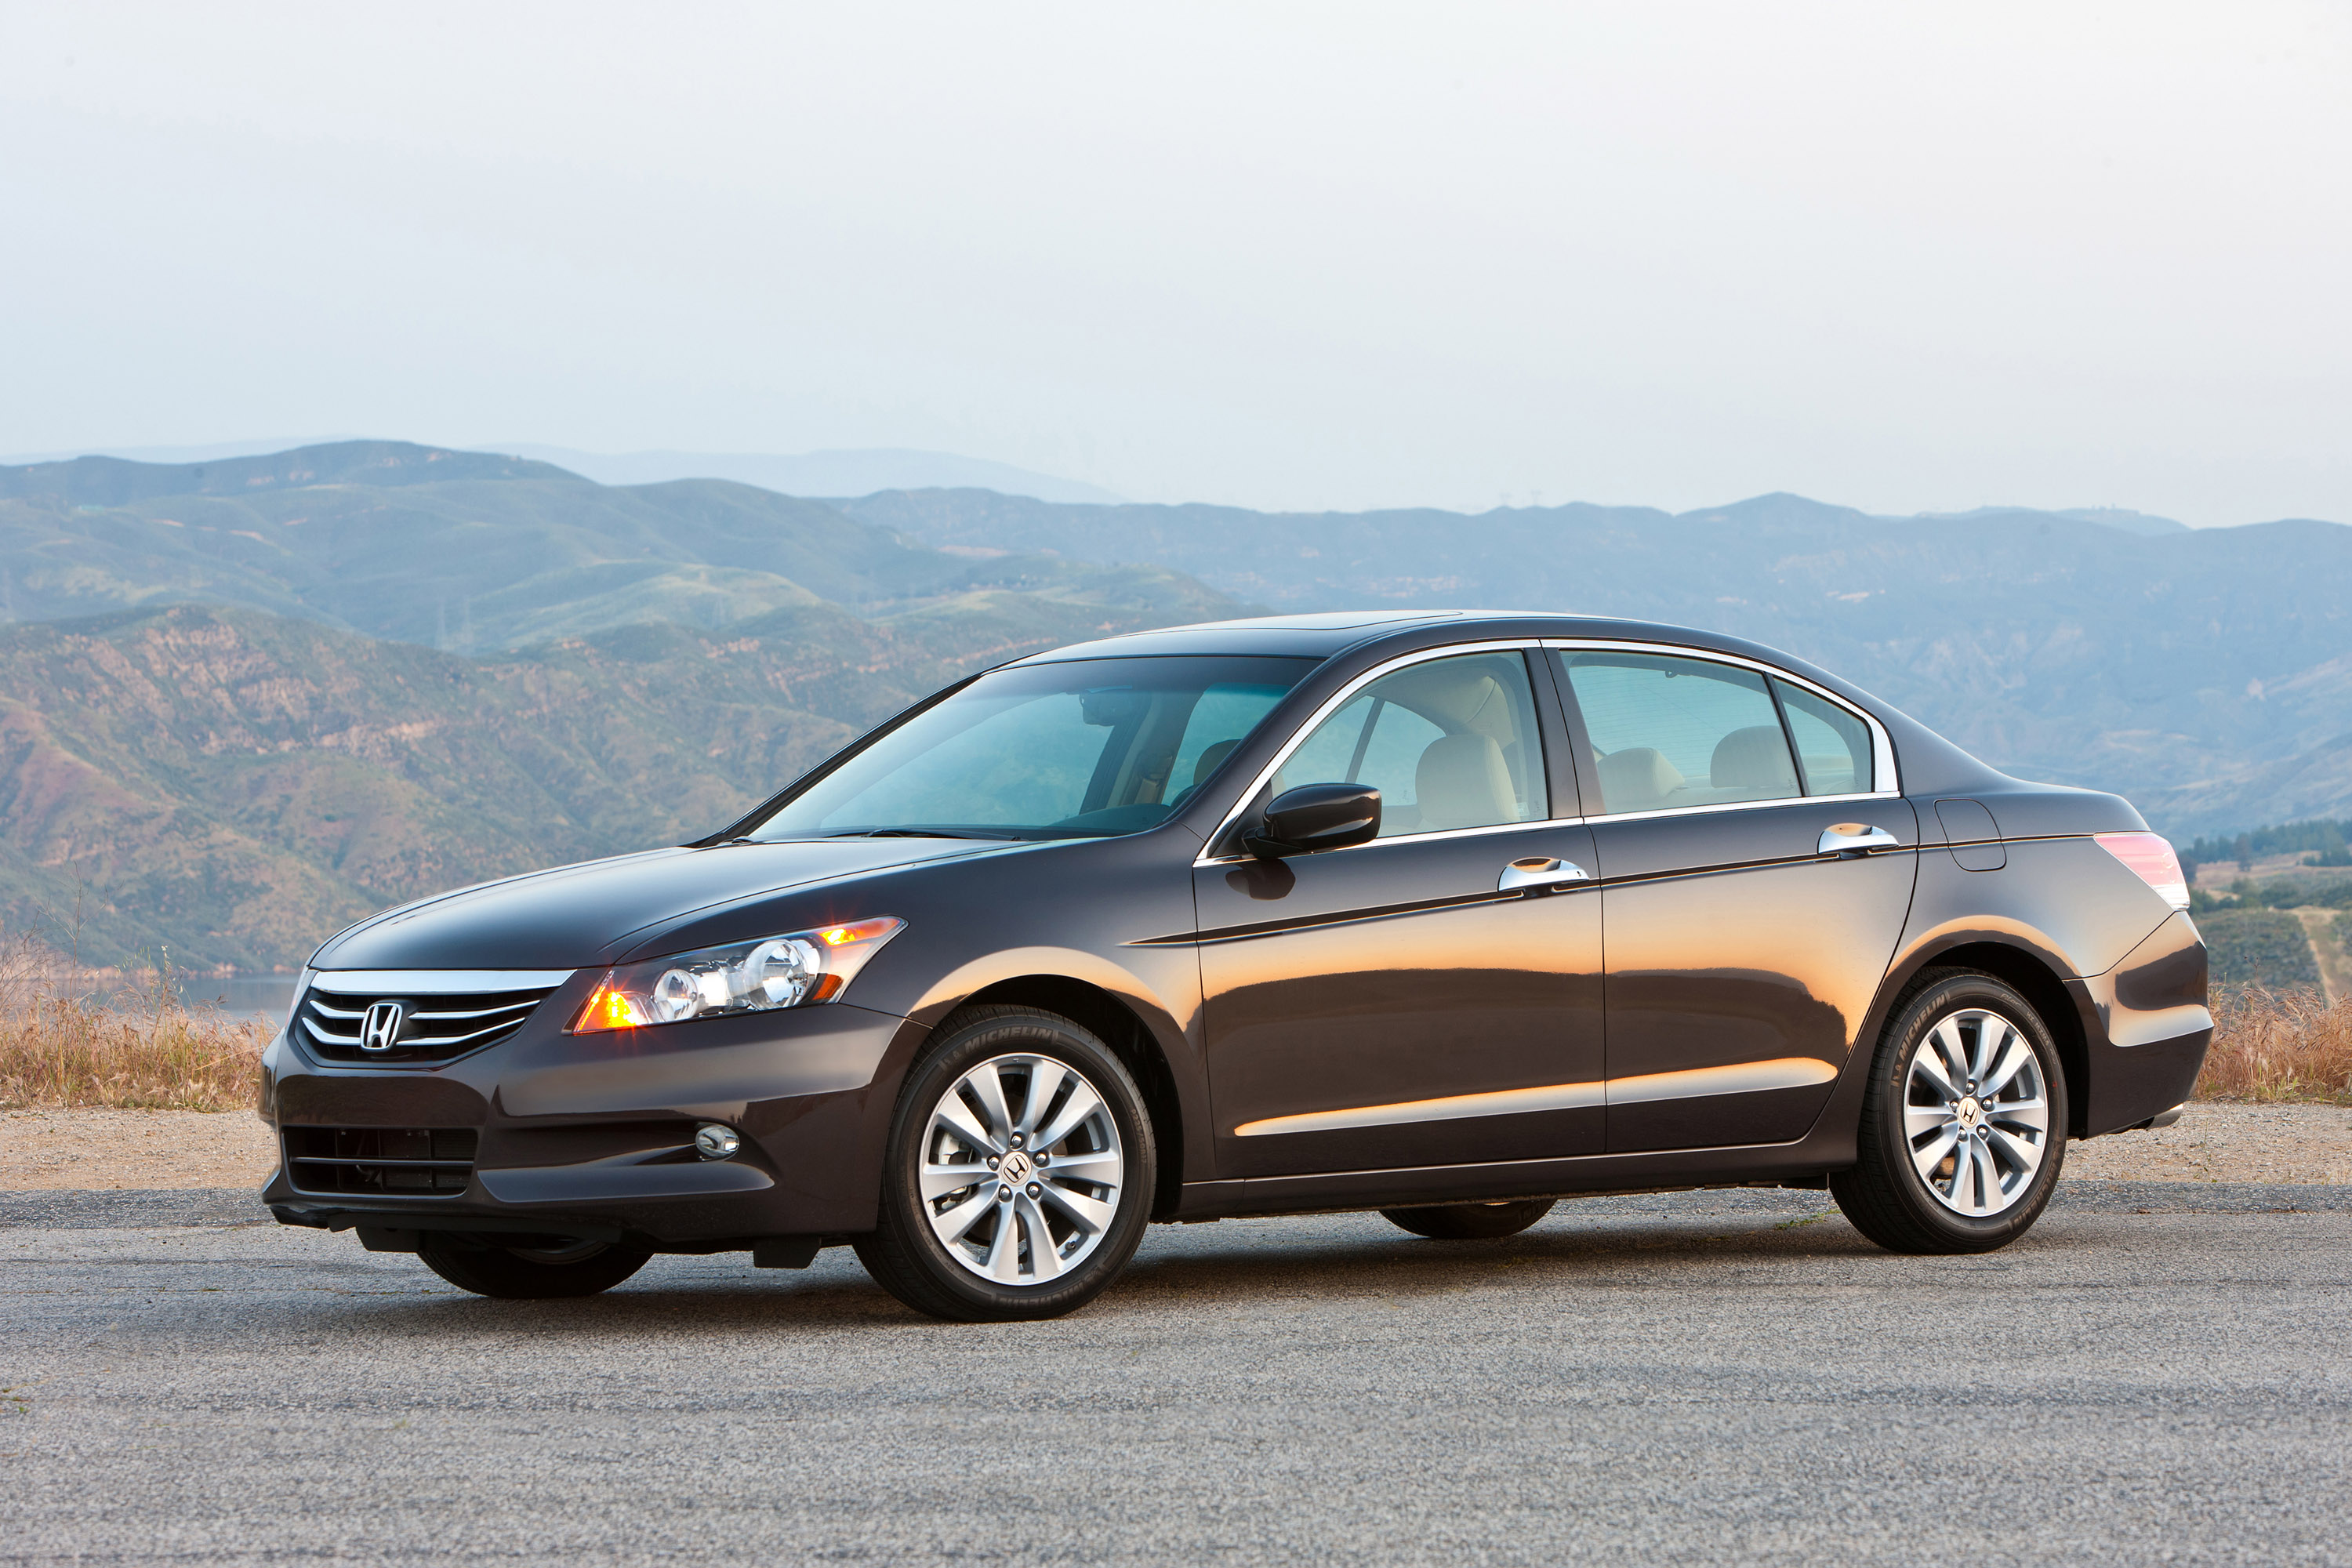 2011 Honda Accord Hd Pictures Carsinvasion Com